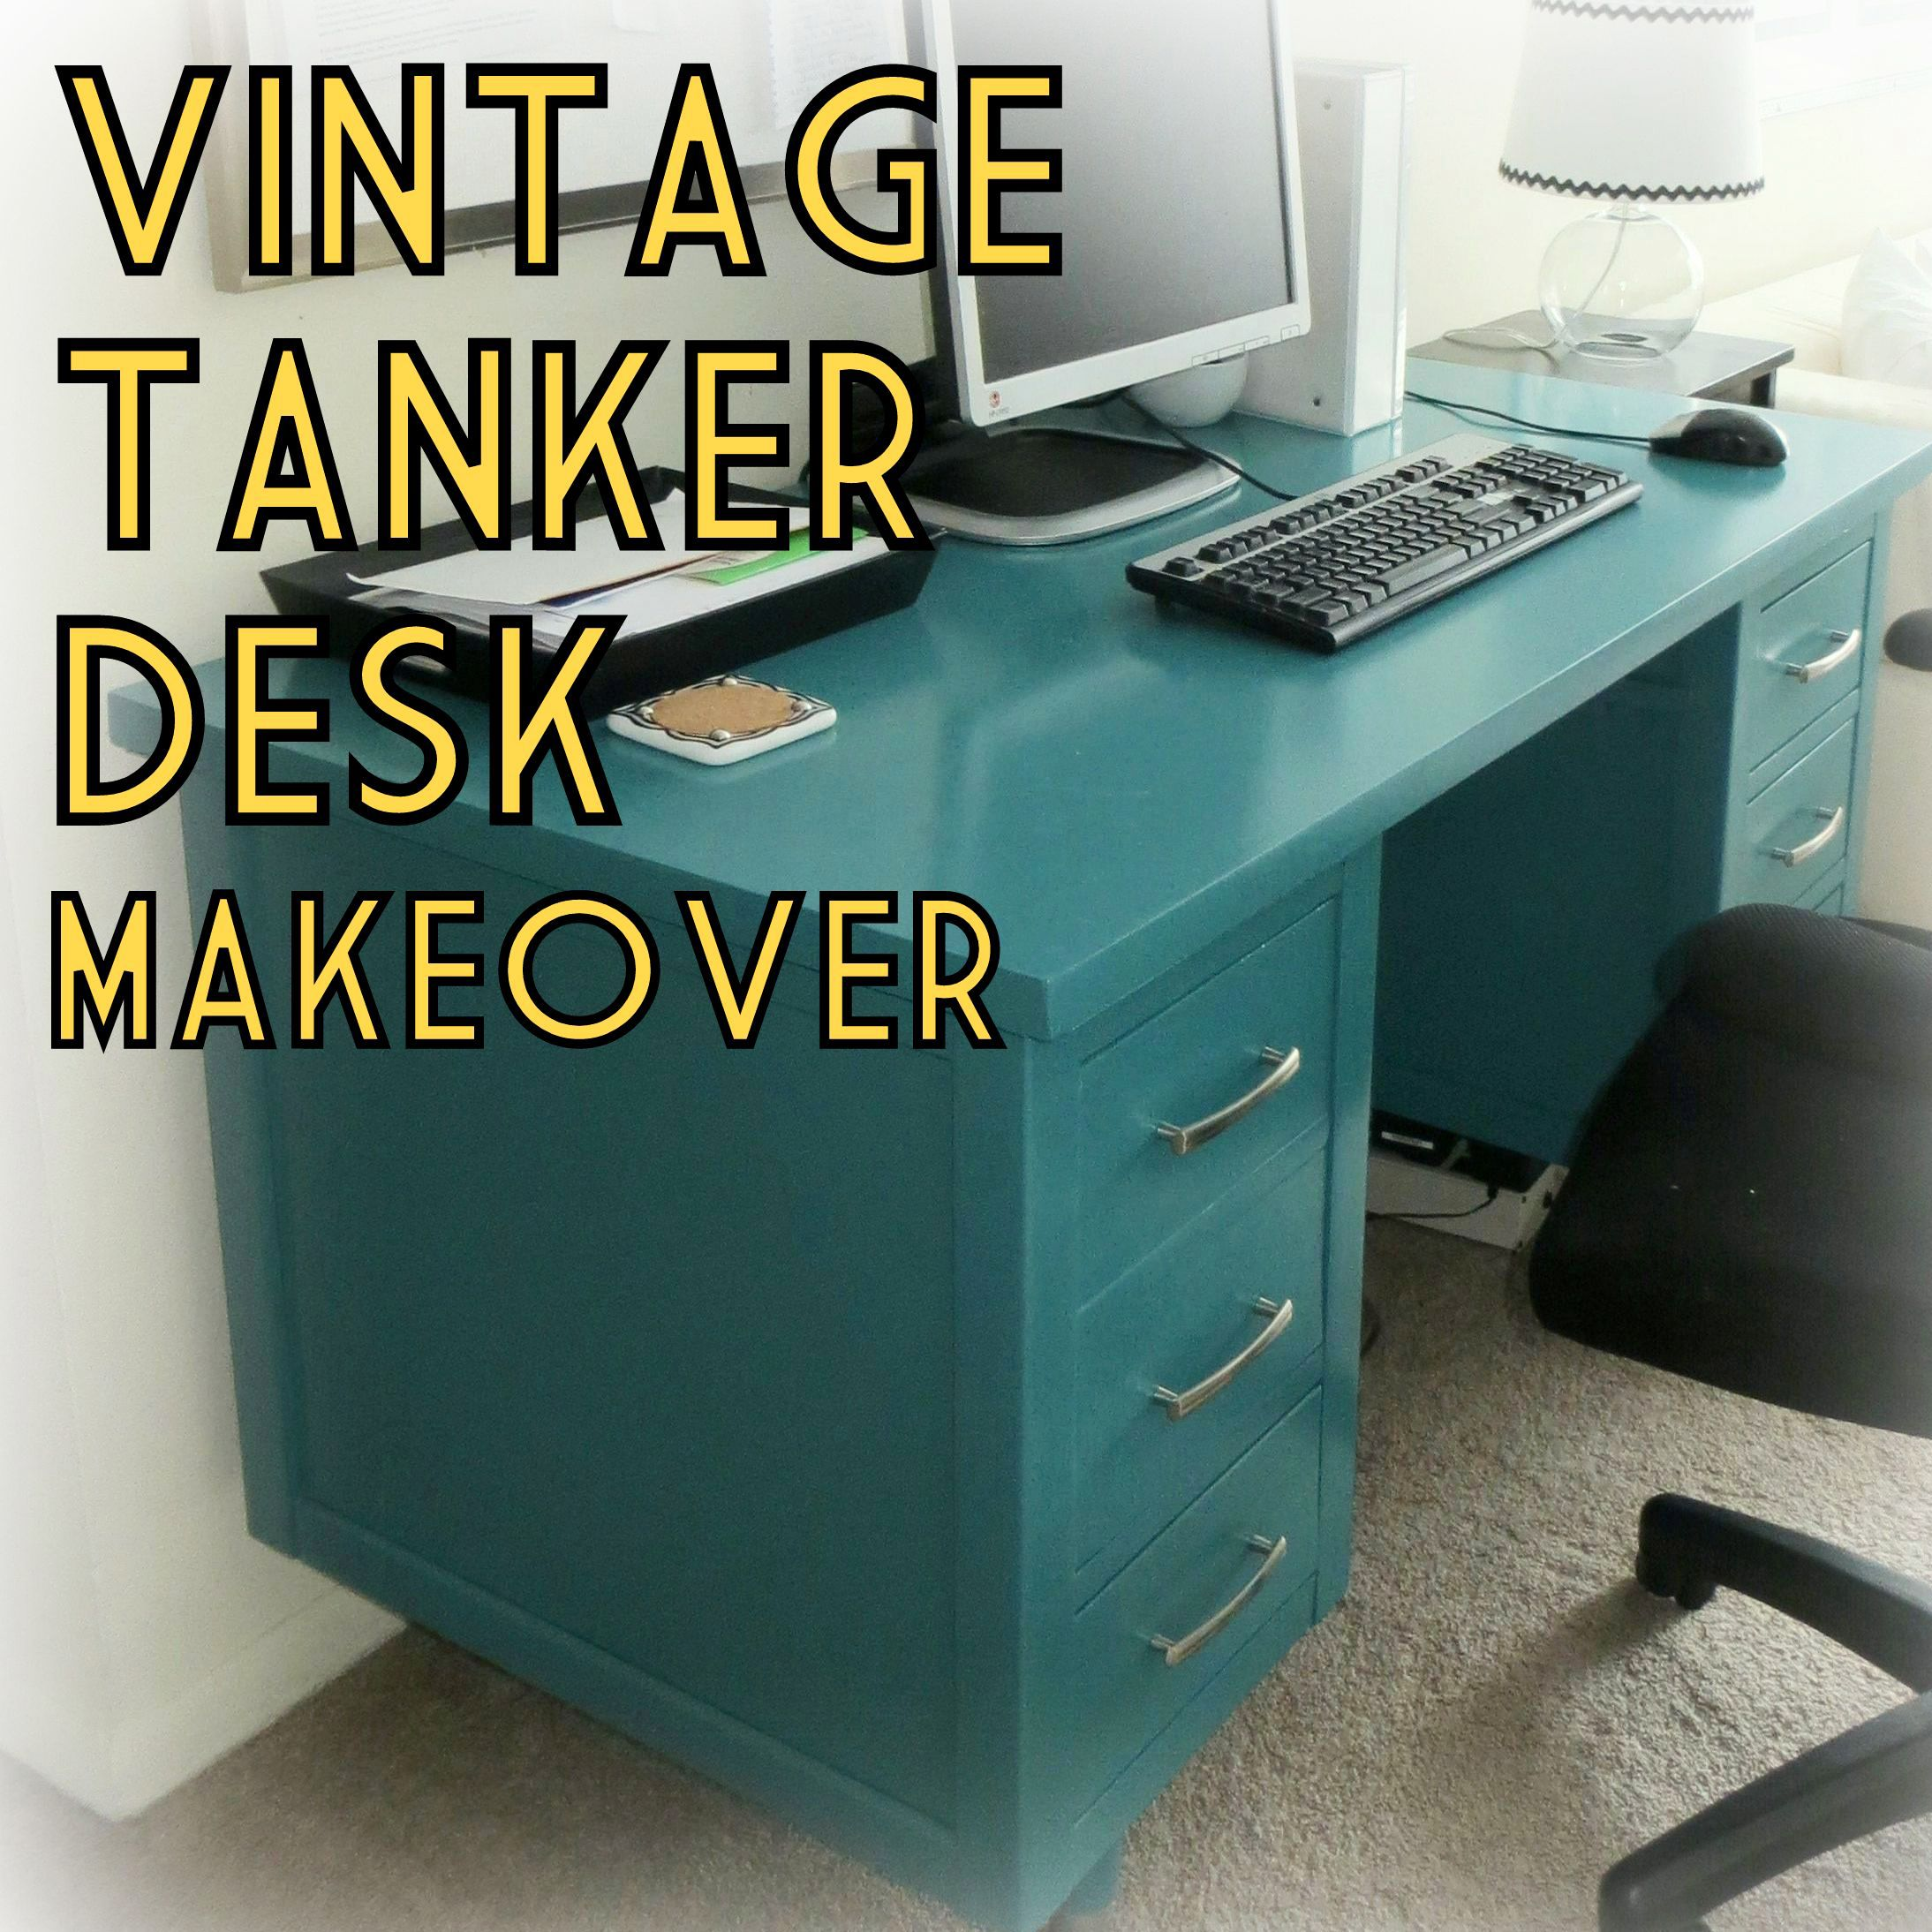 Uncategorized Vintage Steel Tanker Desk vintage mcm wood tanker desk paint furniture makeover teal turquoise home office